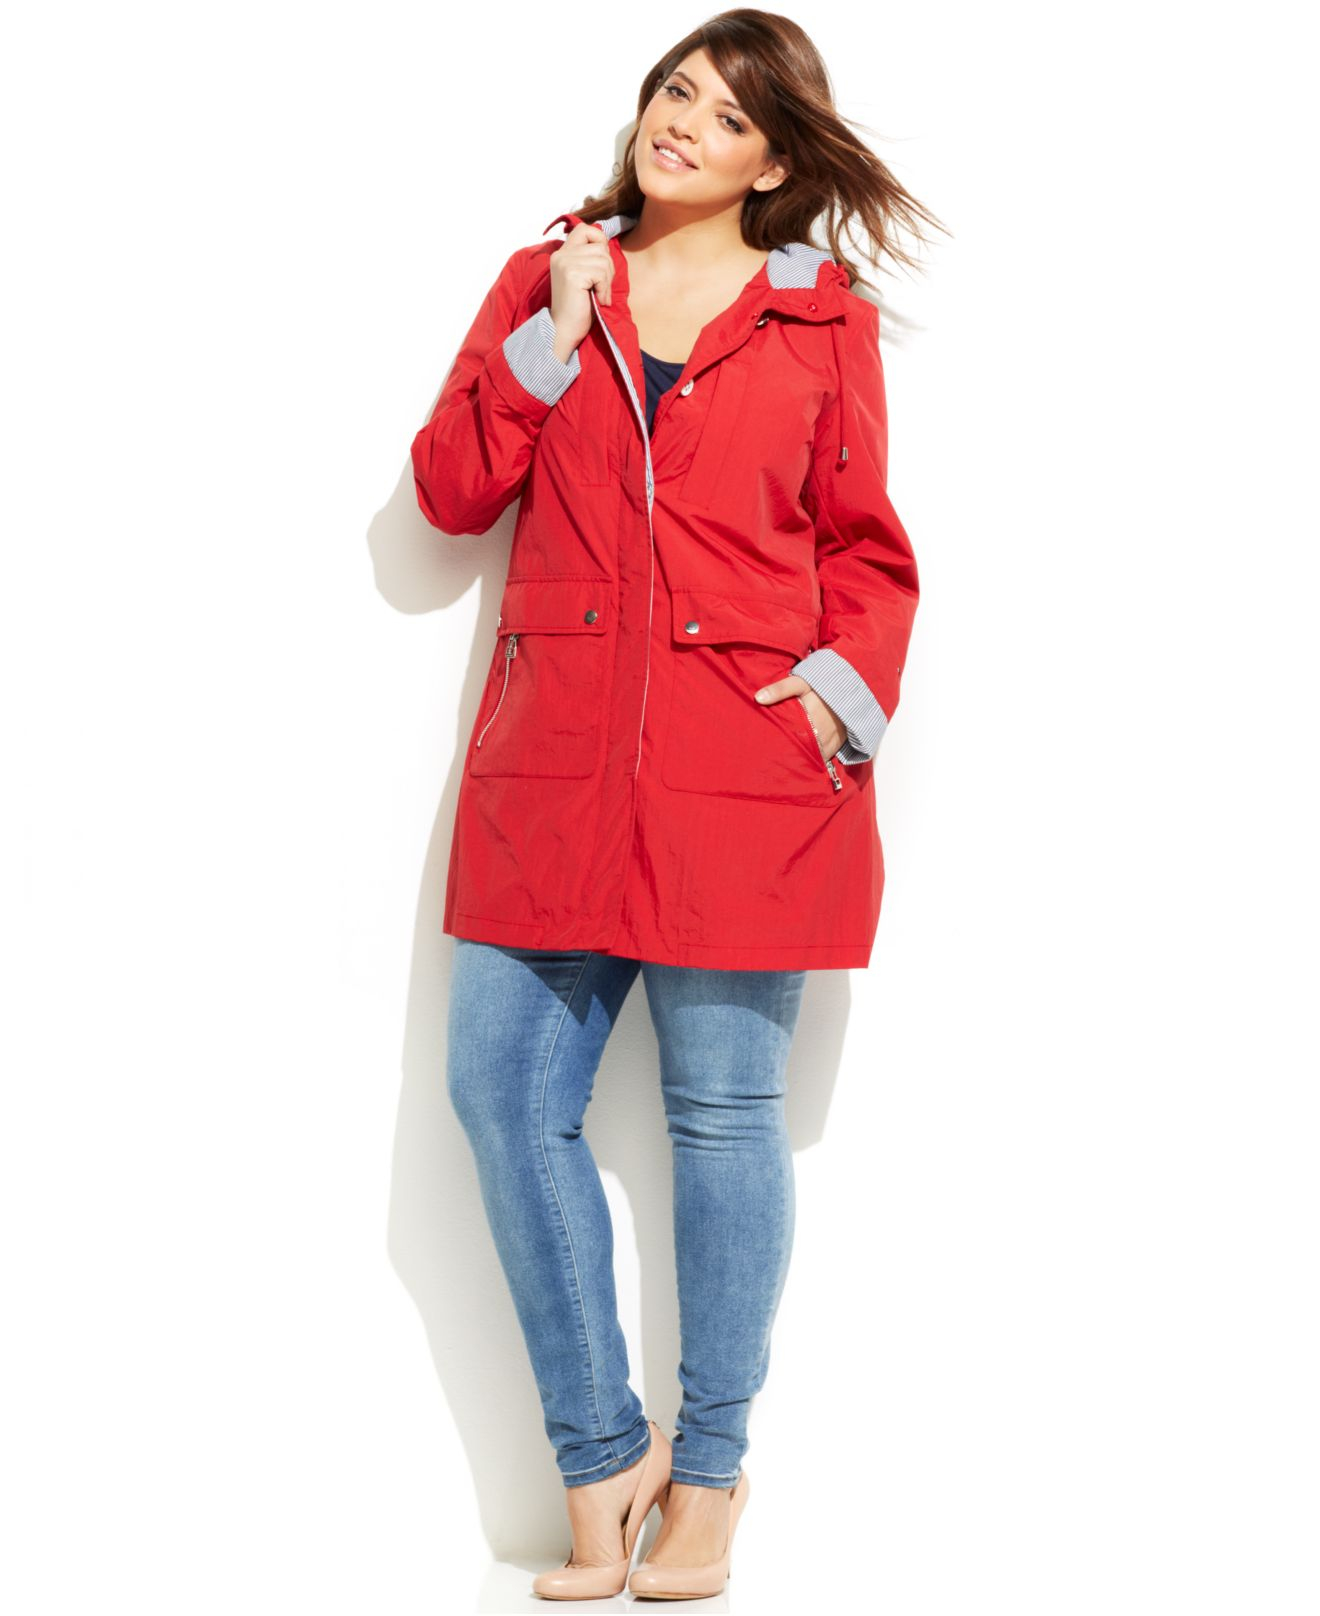 6534adf243ba4 Lyst - Tommy Hilfiger Plus Size Button-Front Anorak Jacket in Red